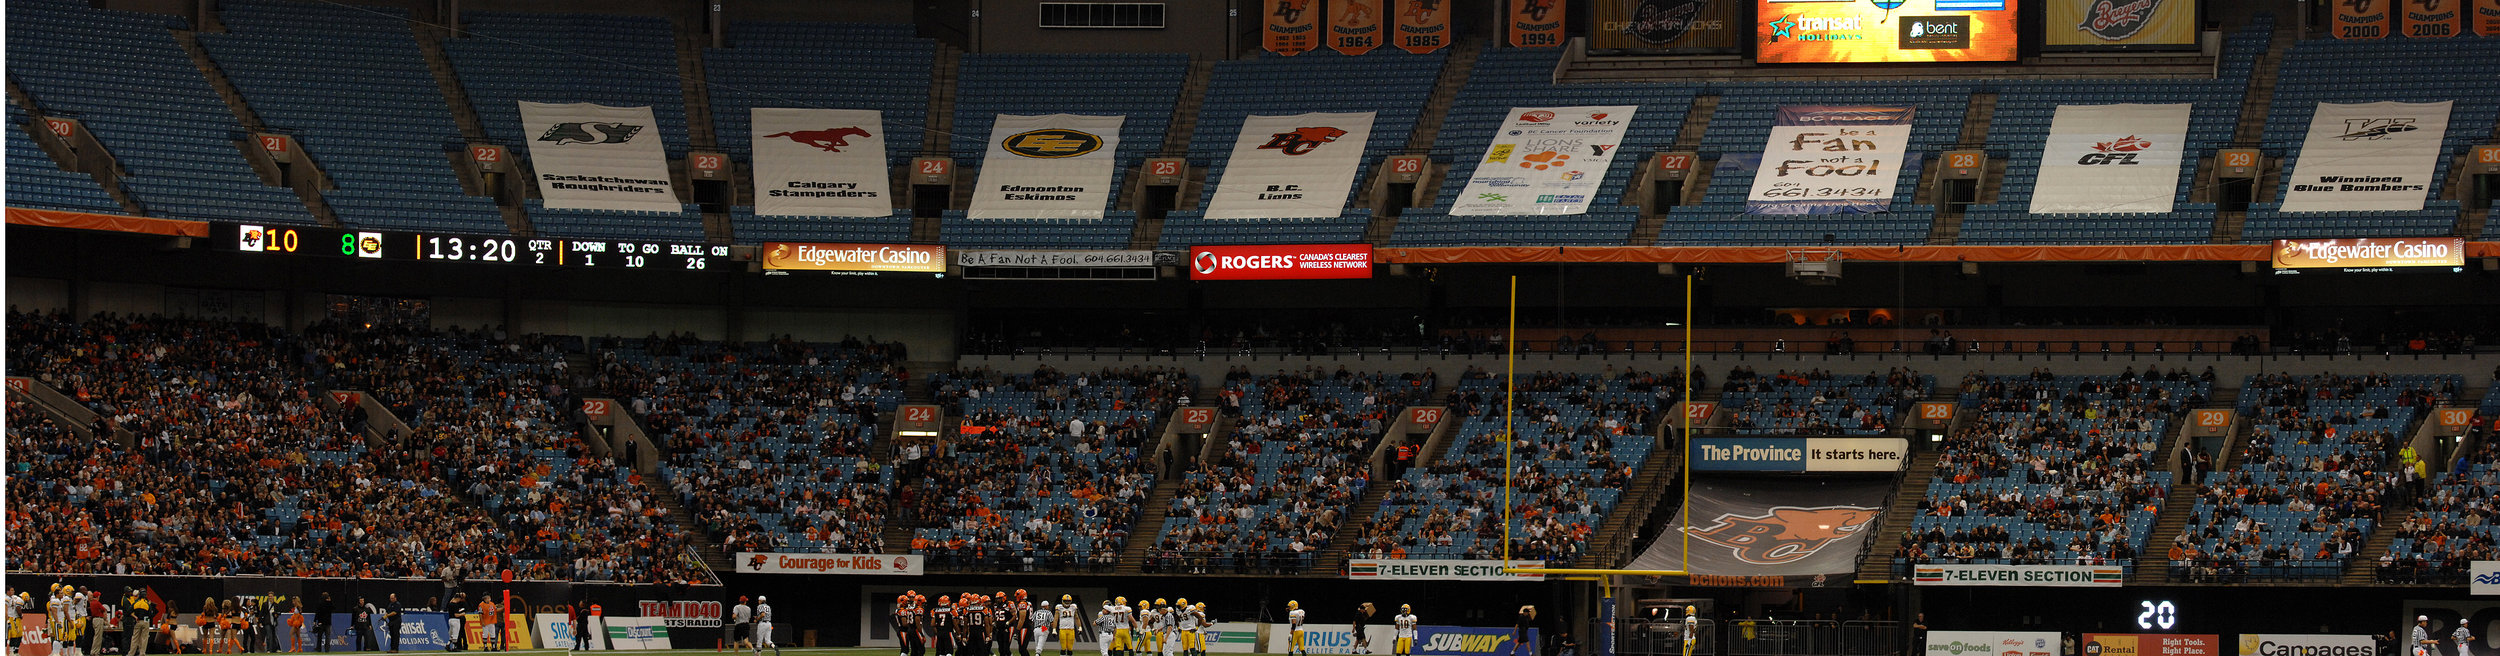 BC Place PANORAMA BCP VIDEO FASCIA and SCORING and 20 Second Clocks.jpg